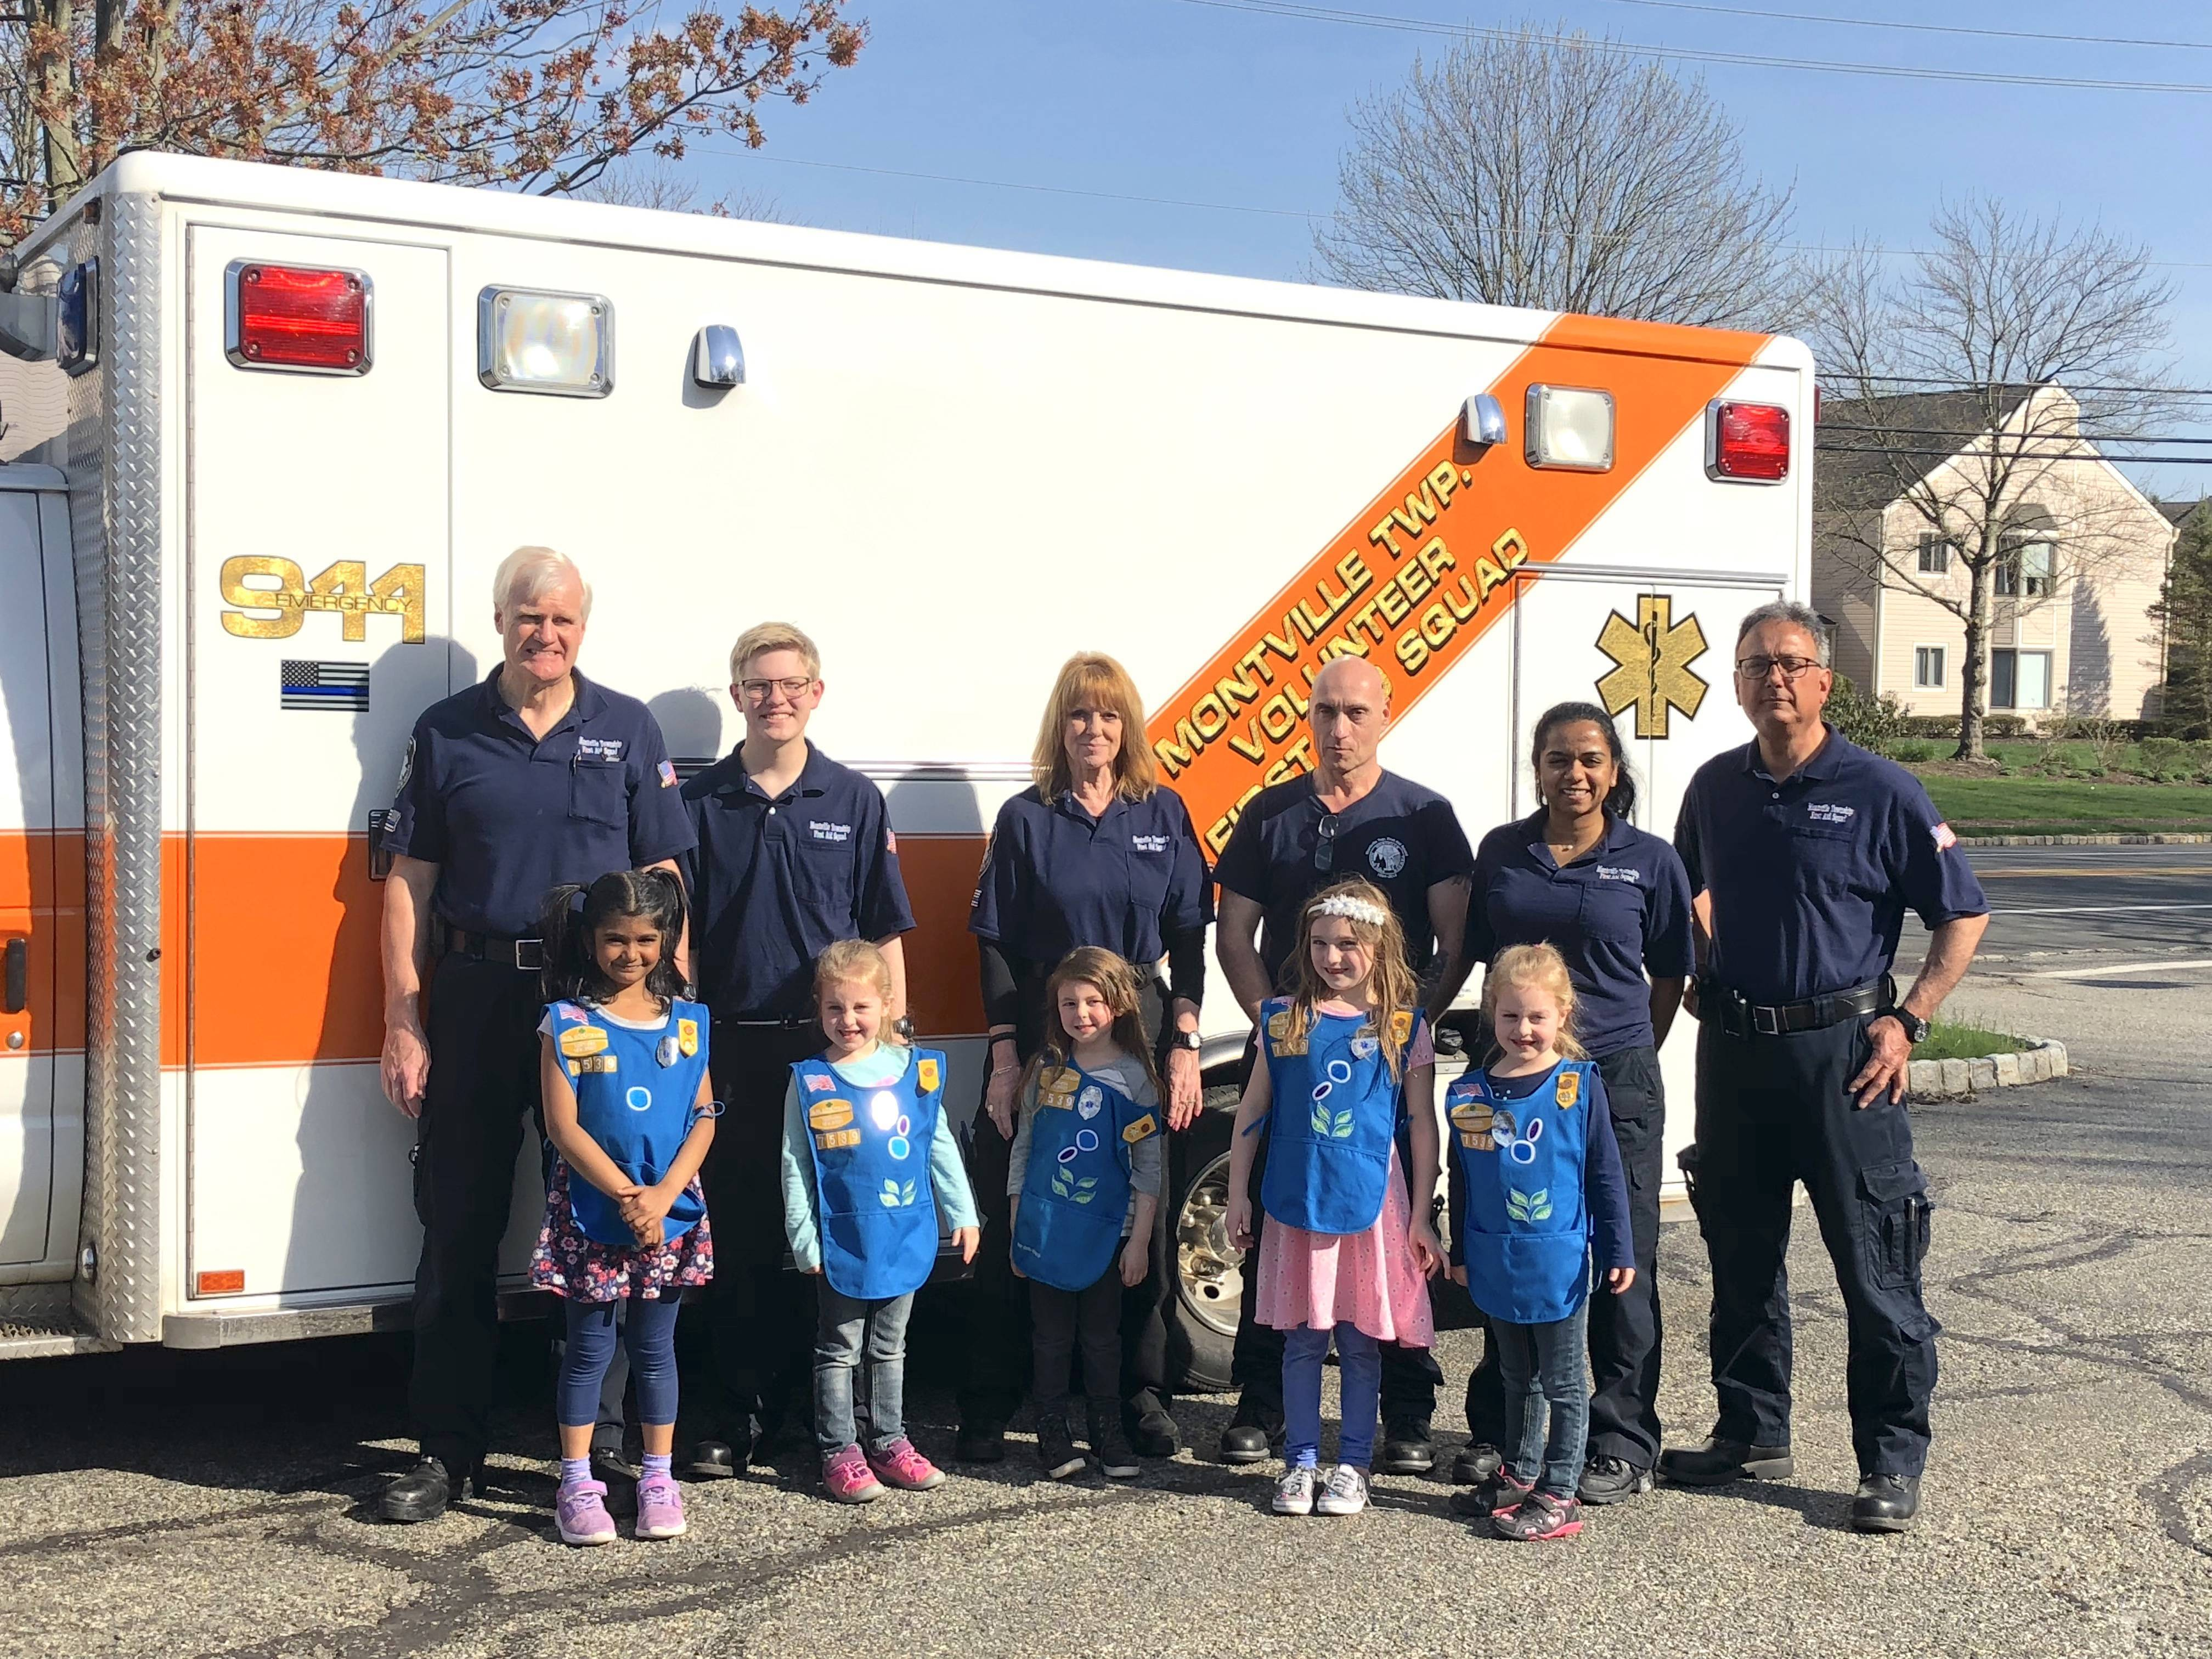 bd8e220ce124e87e775a_cookies_and_girl_scout_donations_May_2018_Courtesy_of_The_Montville_Township_First_Aid_Squadjpg.jpeg